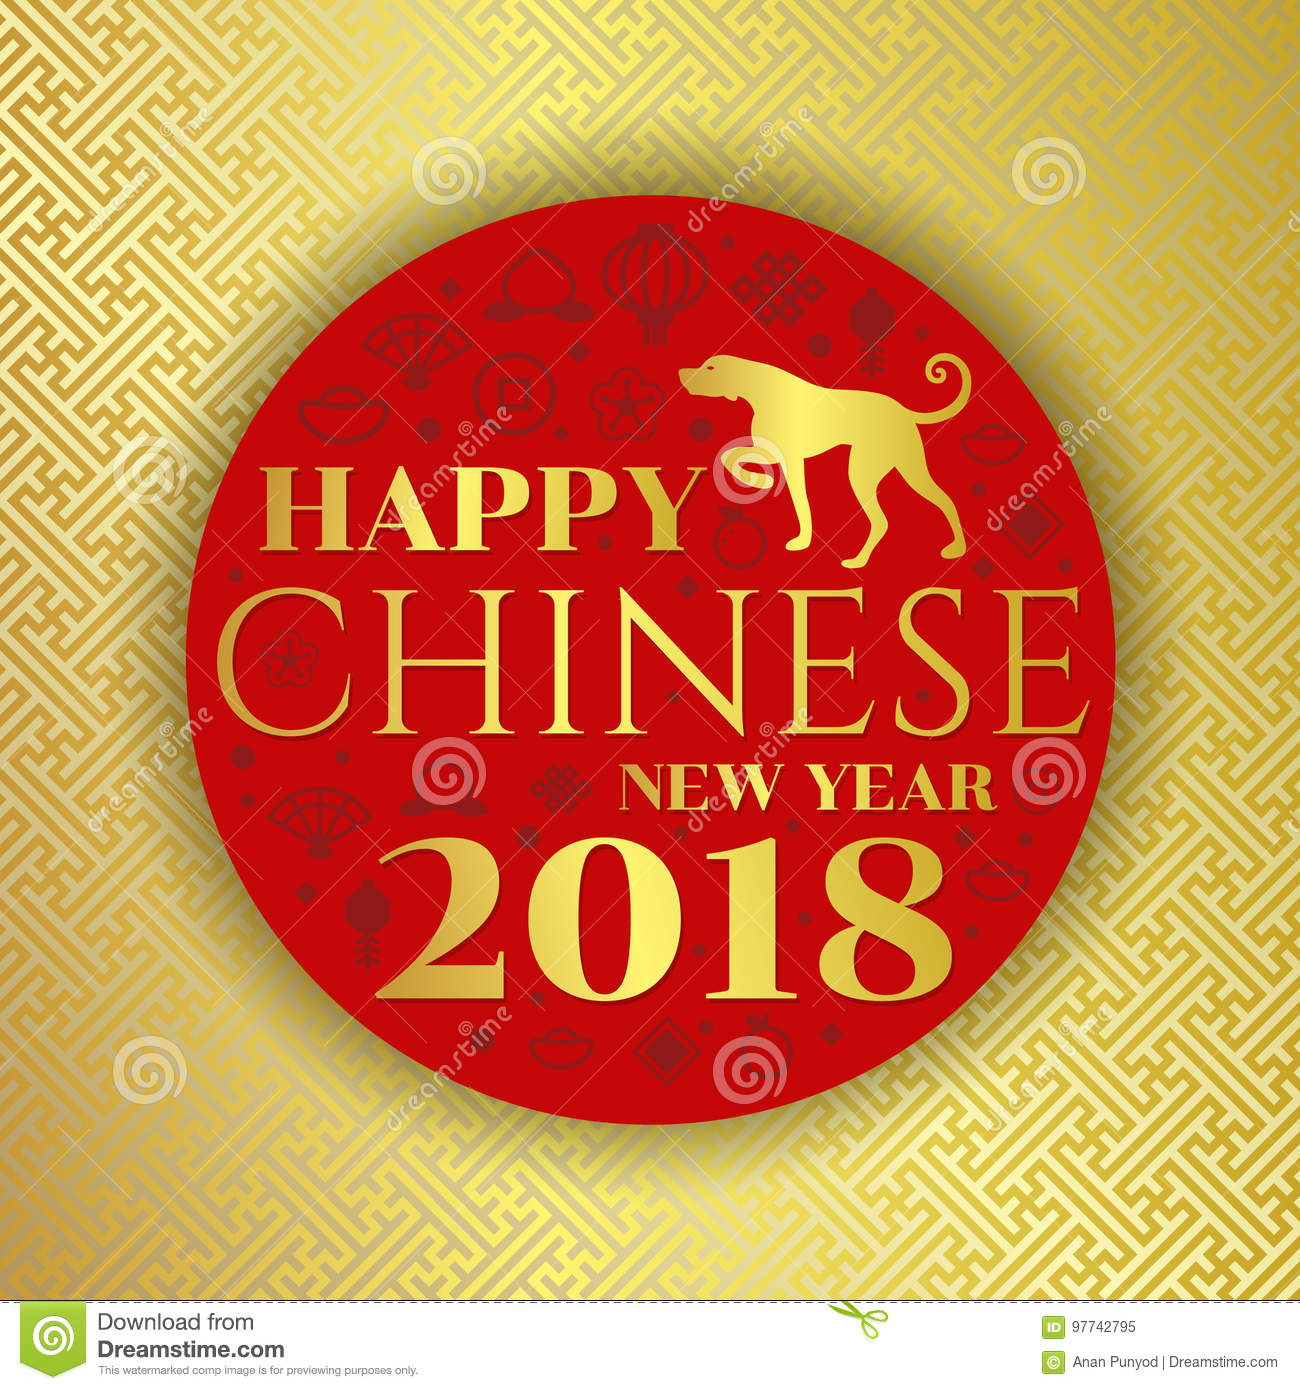 happy chinese new year 2018 text and dog zodiac on red circle with china icon sign